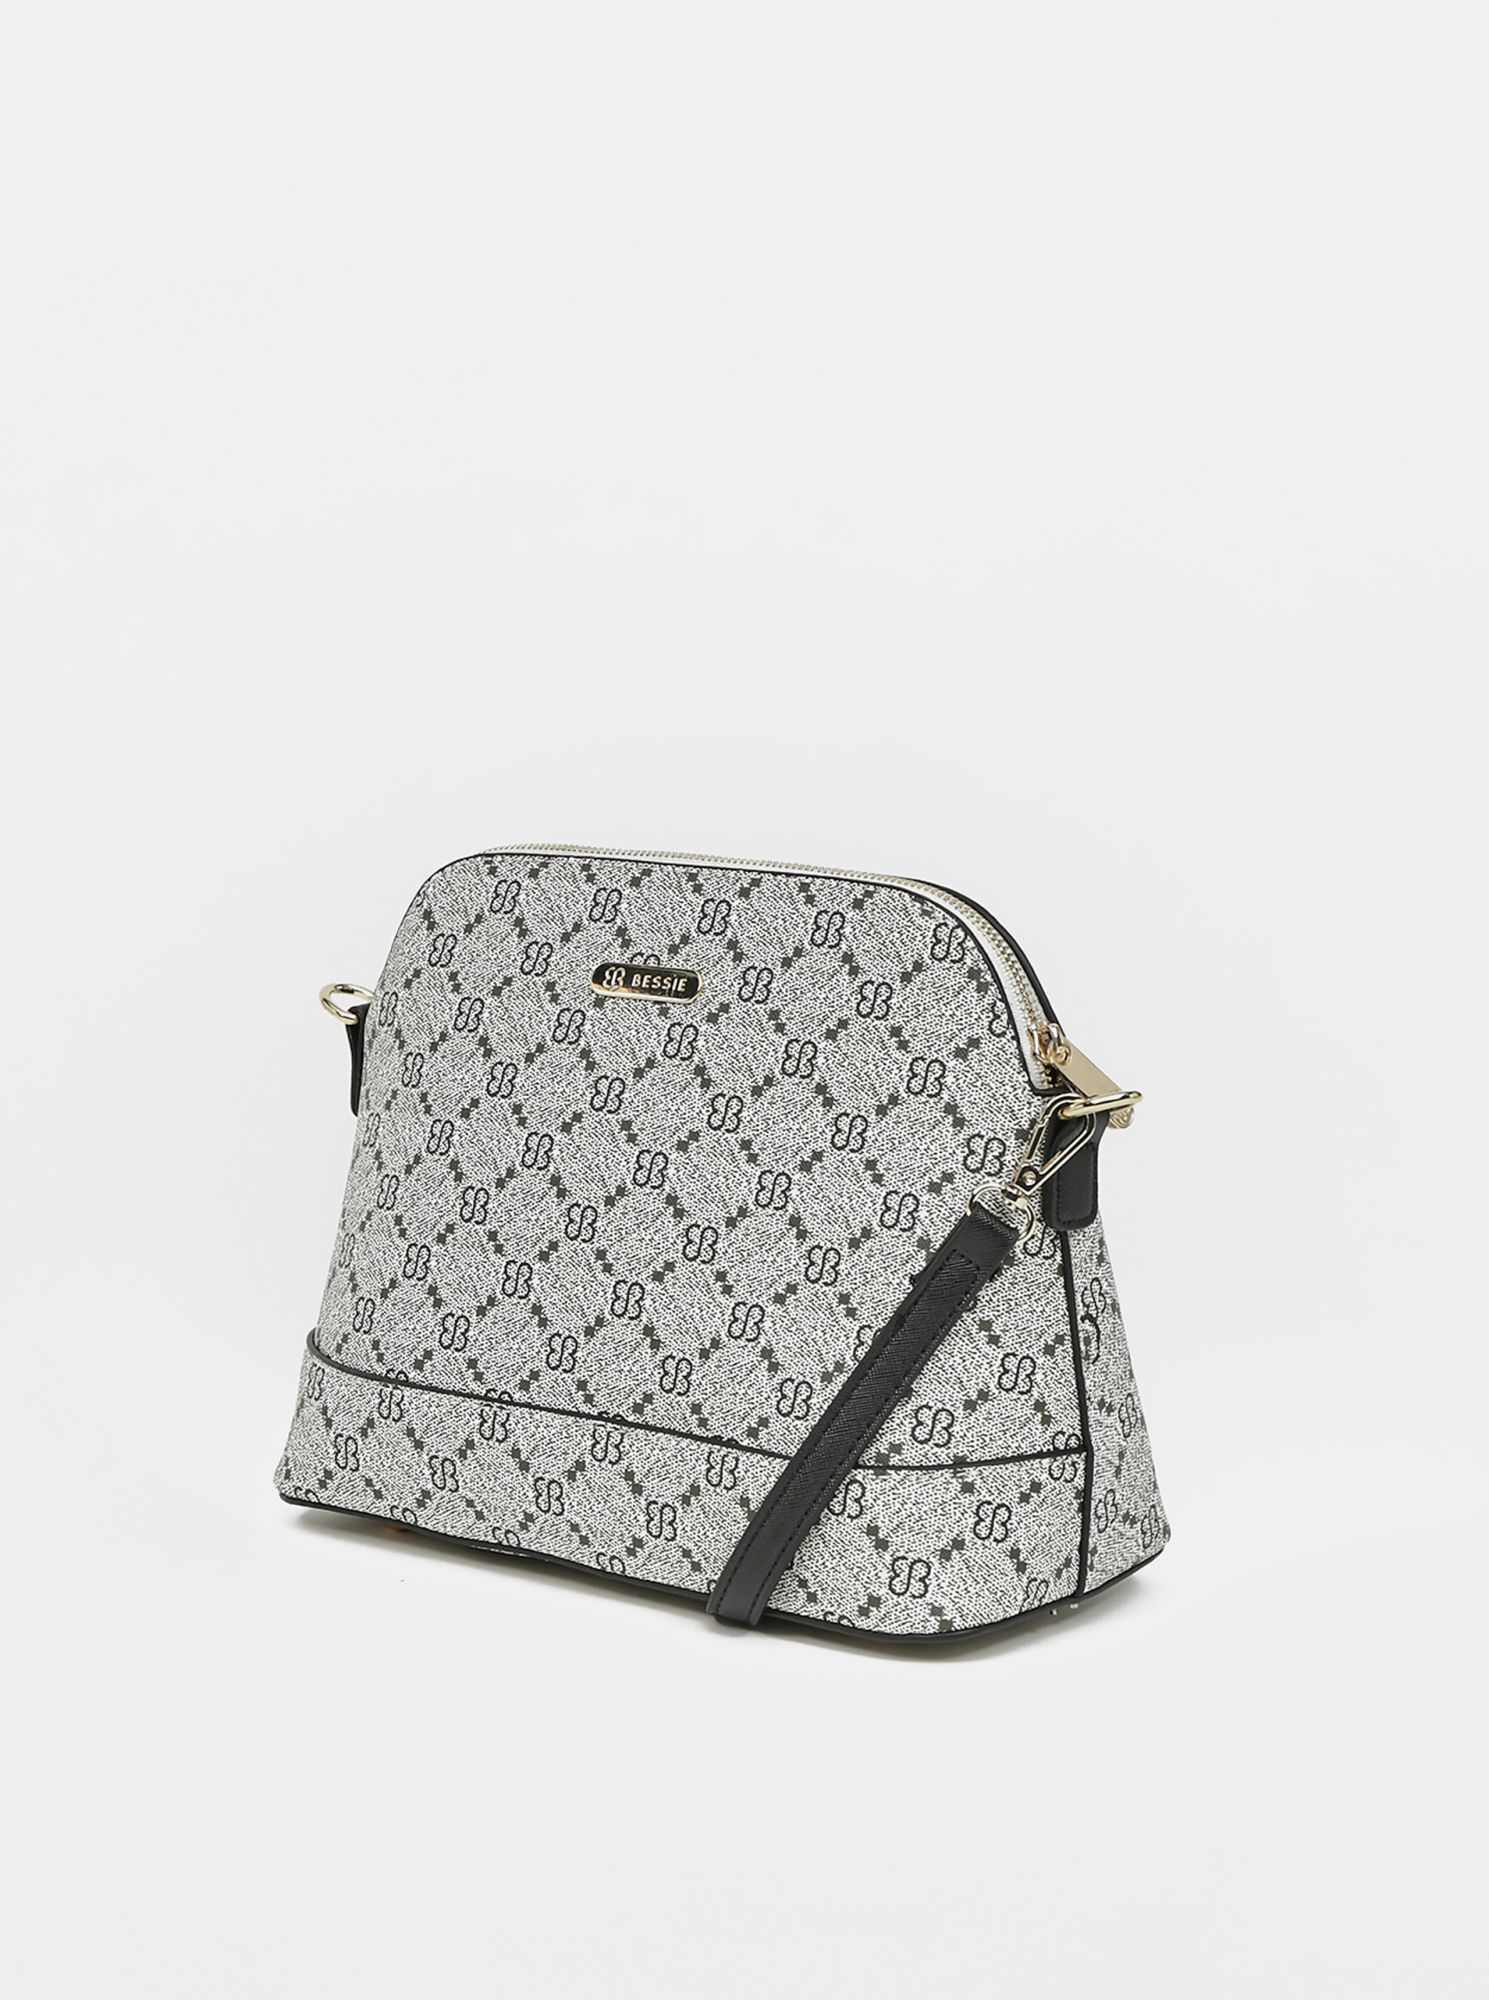 Siva torbica s torbico crossbody in denarnico Bessie London 3 v 1